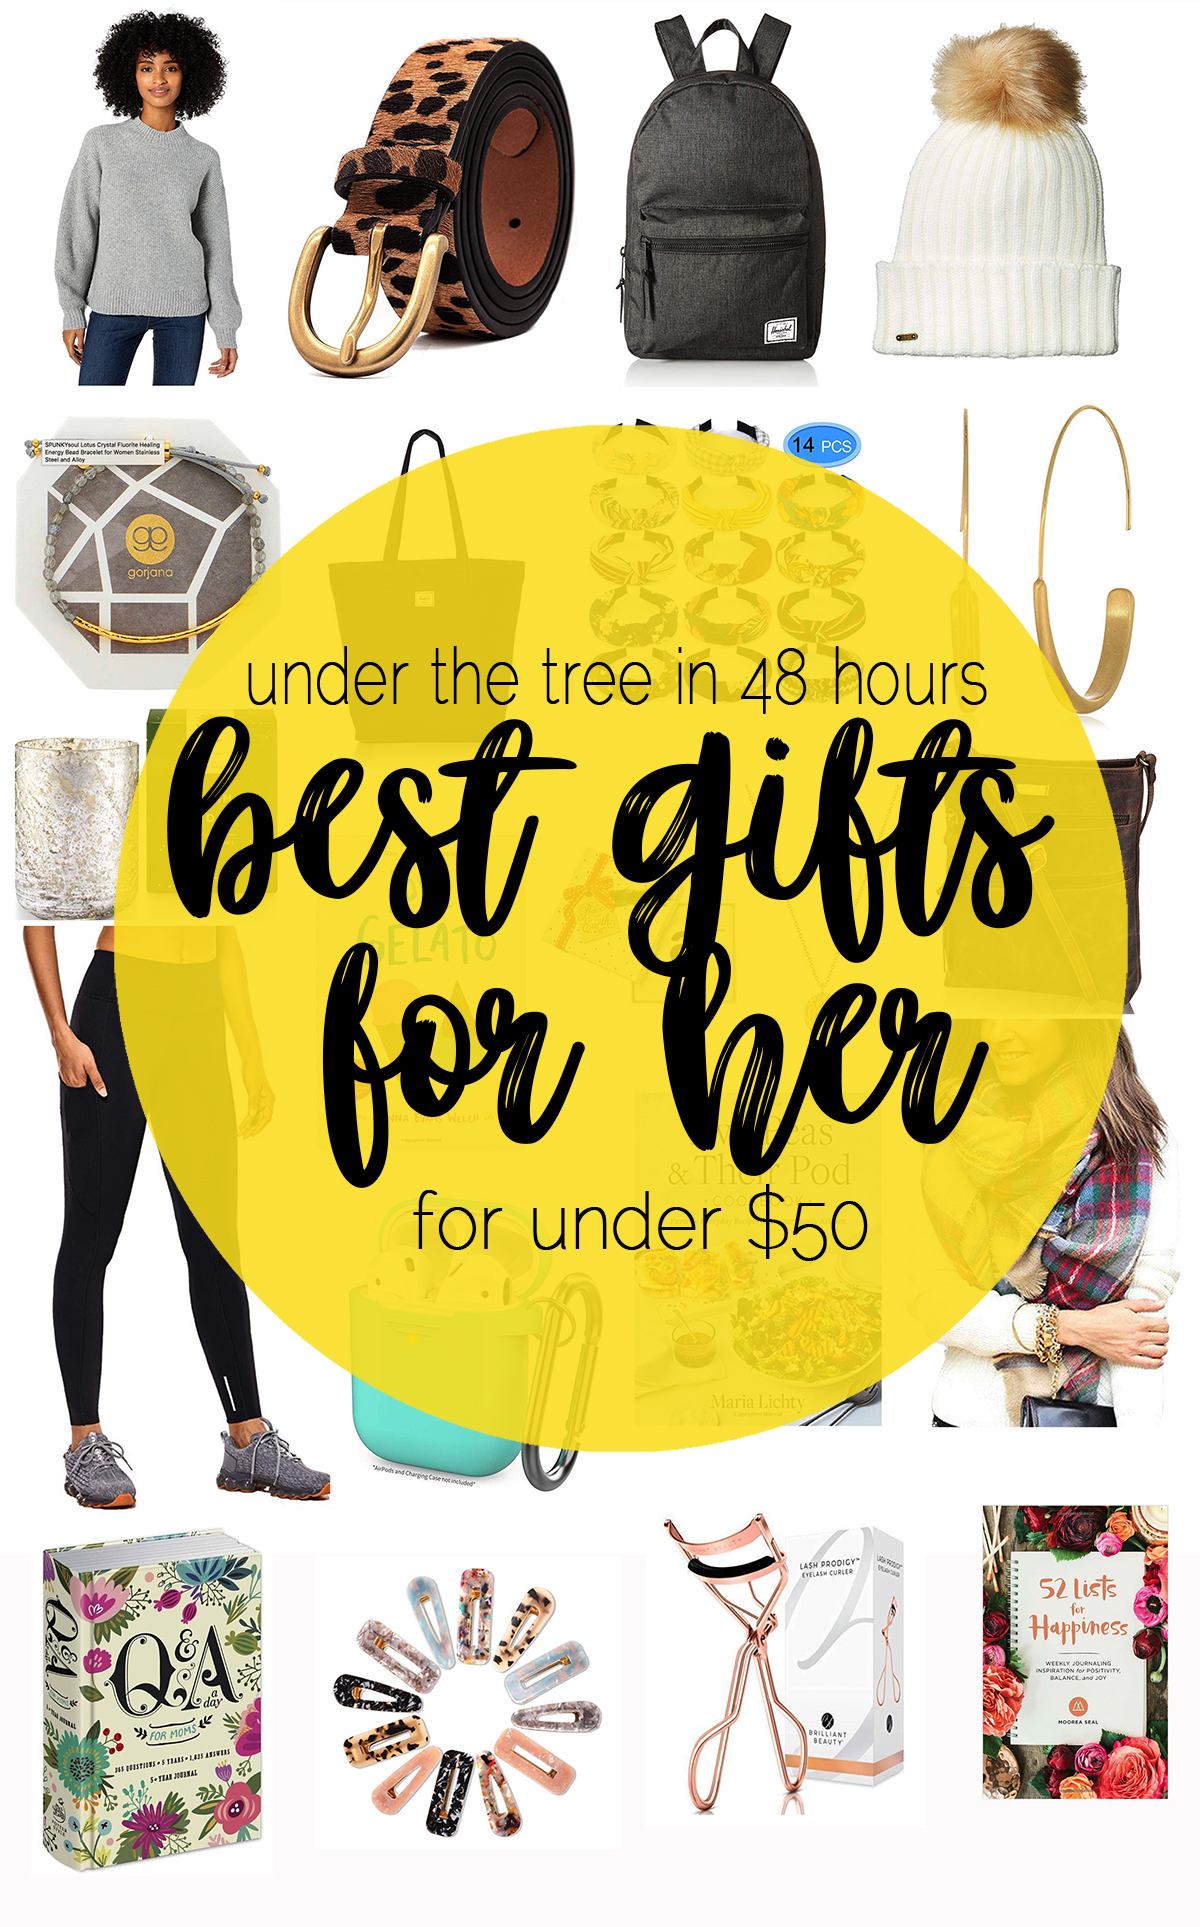 Best Gifts for Her Under $50 in Under 48 Hours with Amazon Prime